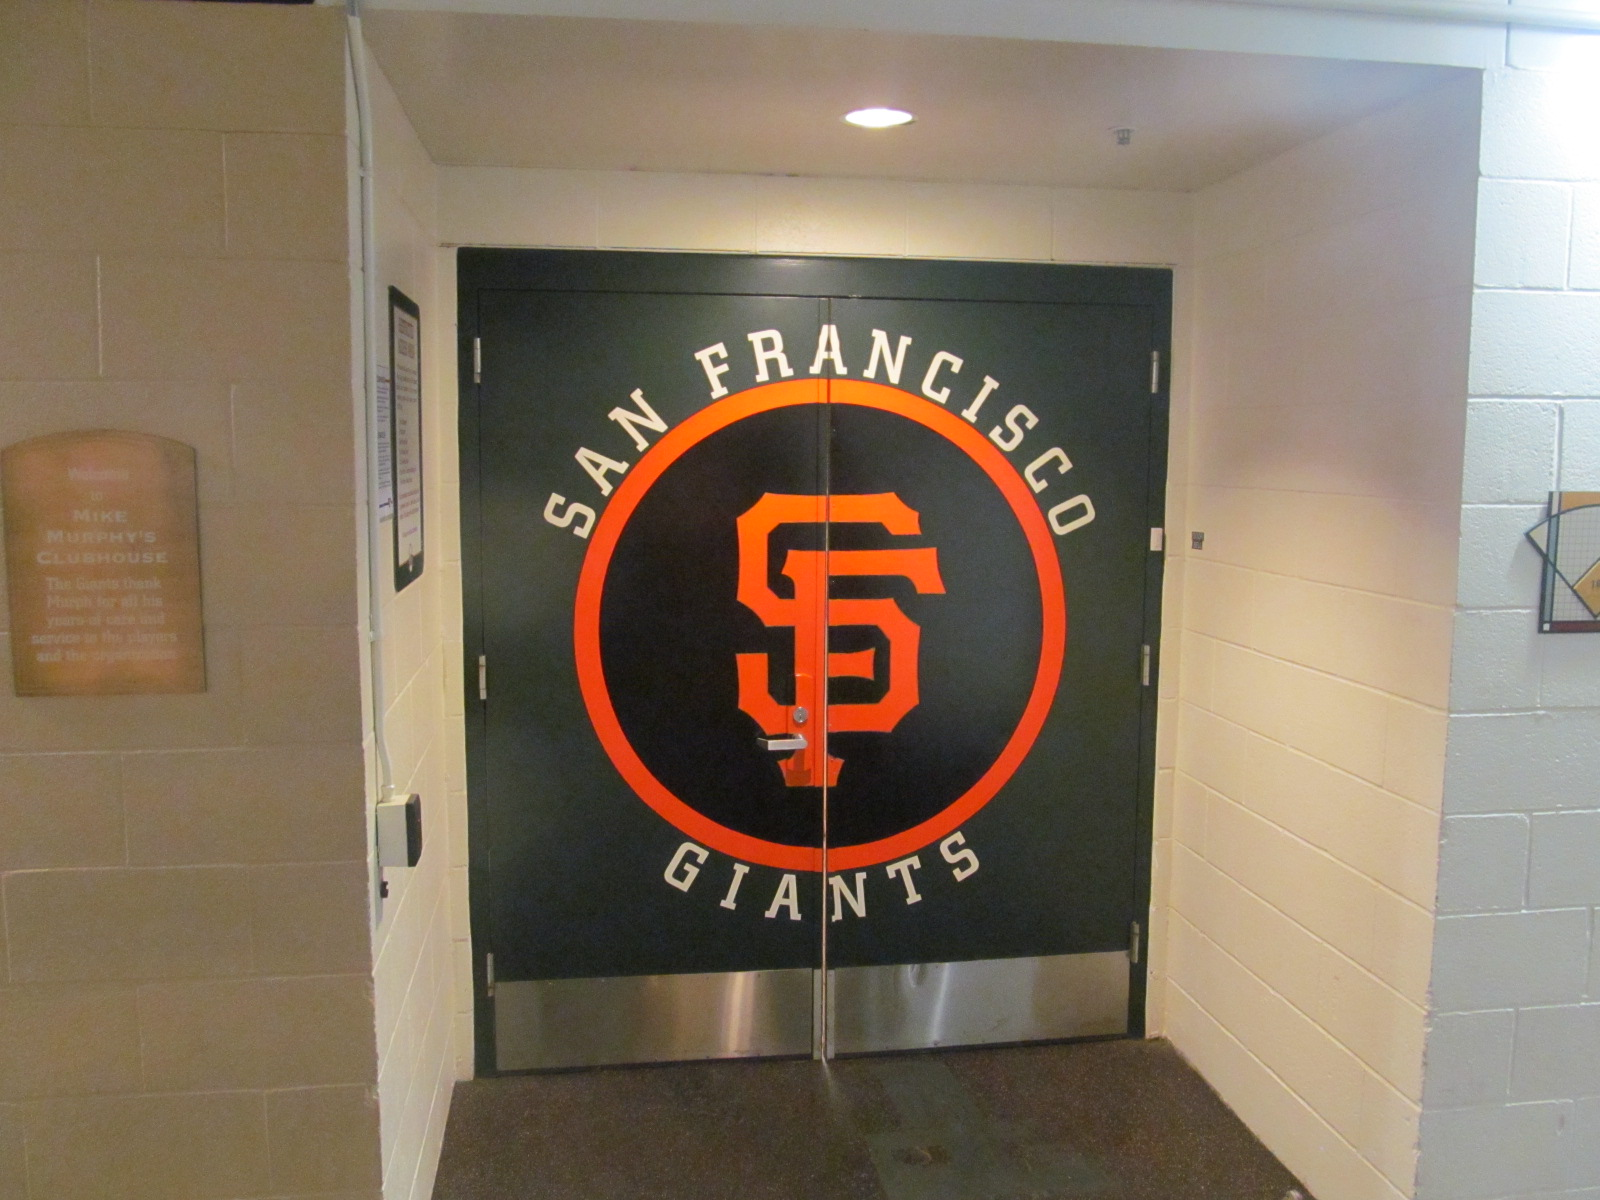 Entrance to Giants Clubhouse